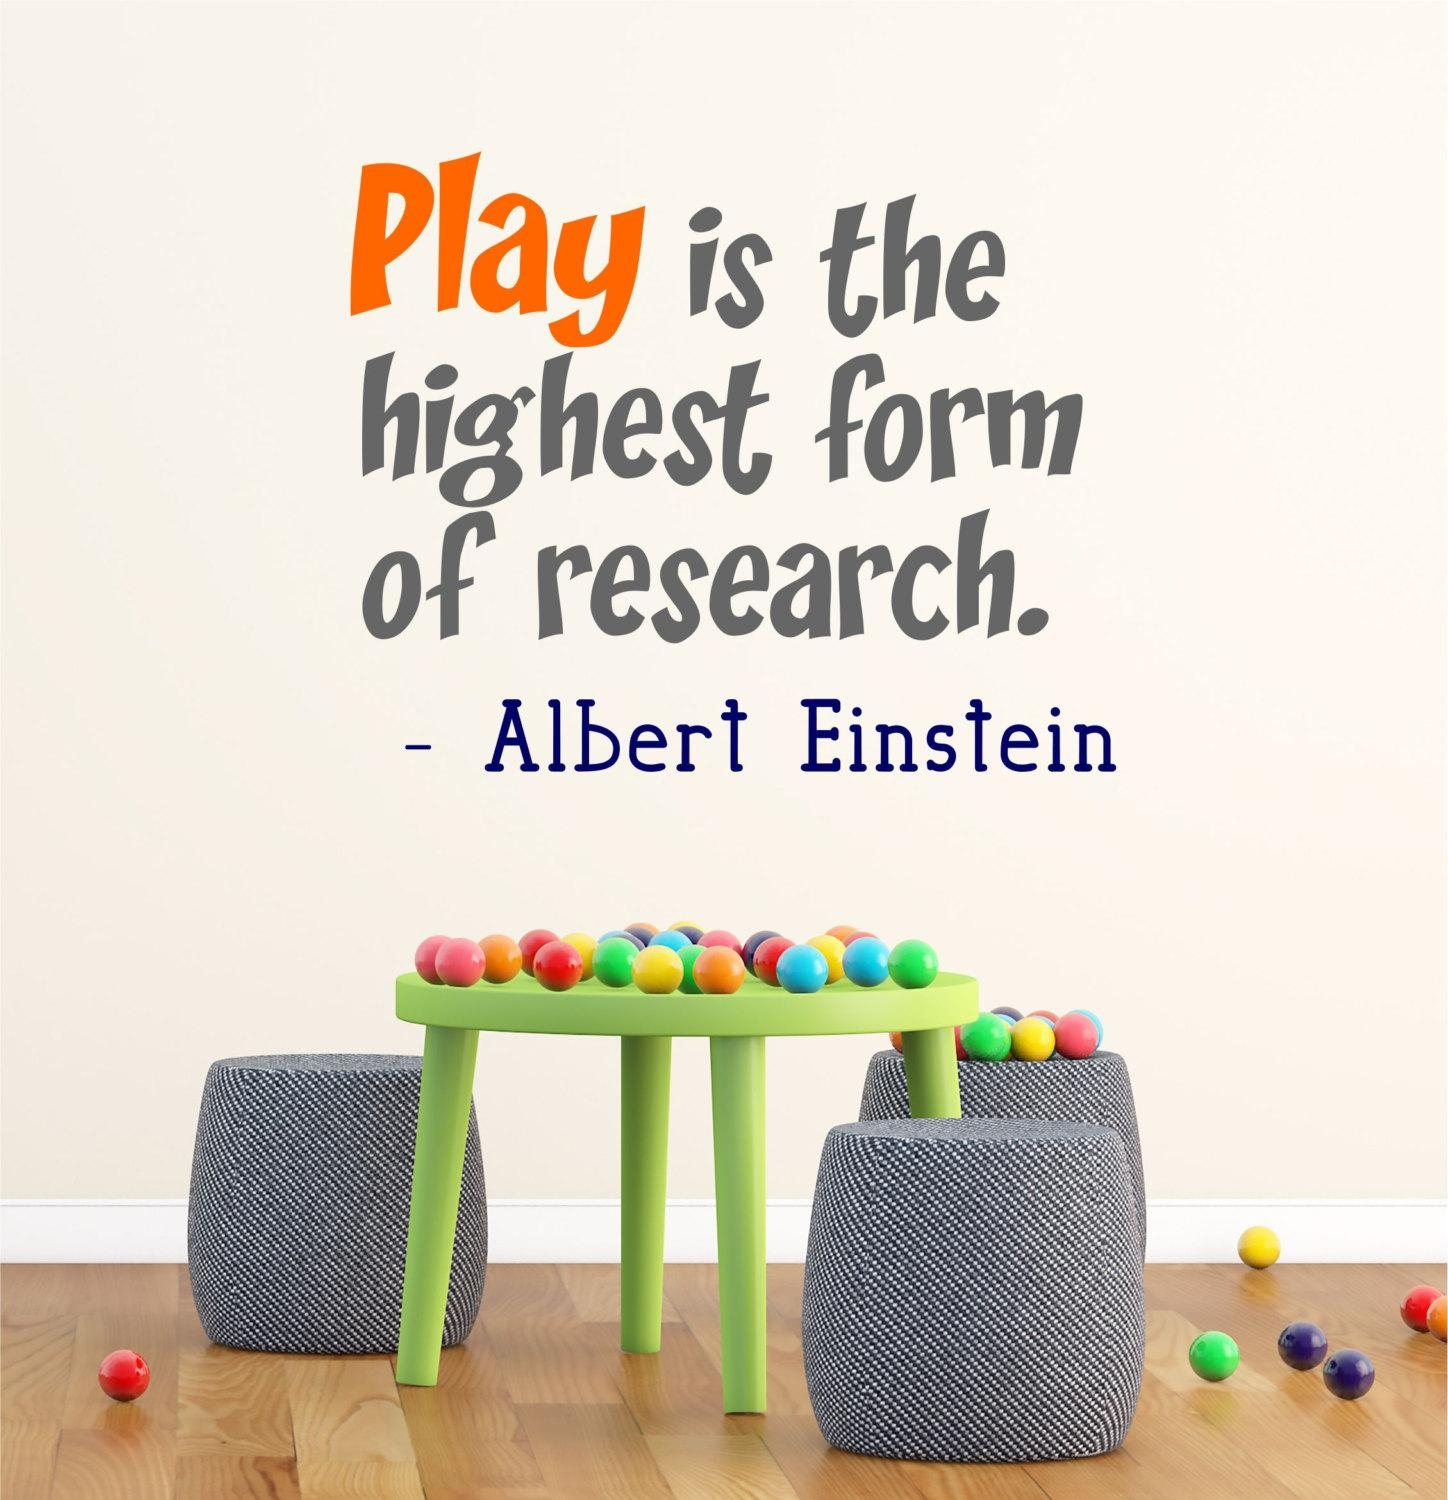 Wall Decals Quotes Einstein ~ Color The Walls Of Your House Pertaining To Preschool Classroom Wall Decals (Image 18 of 20)